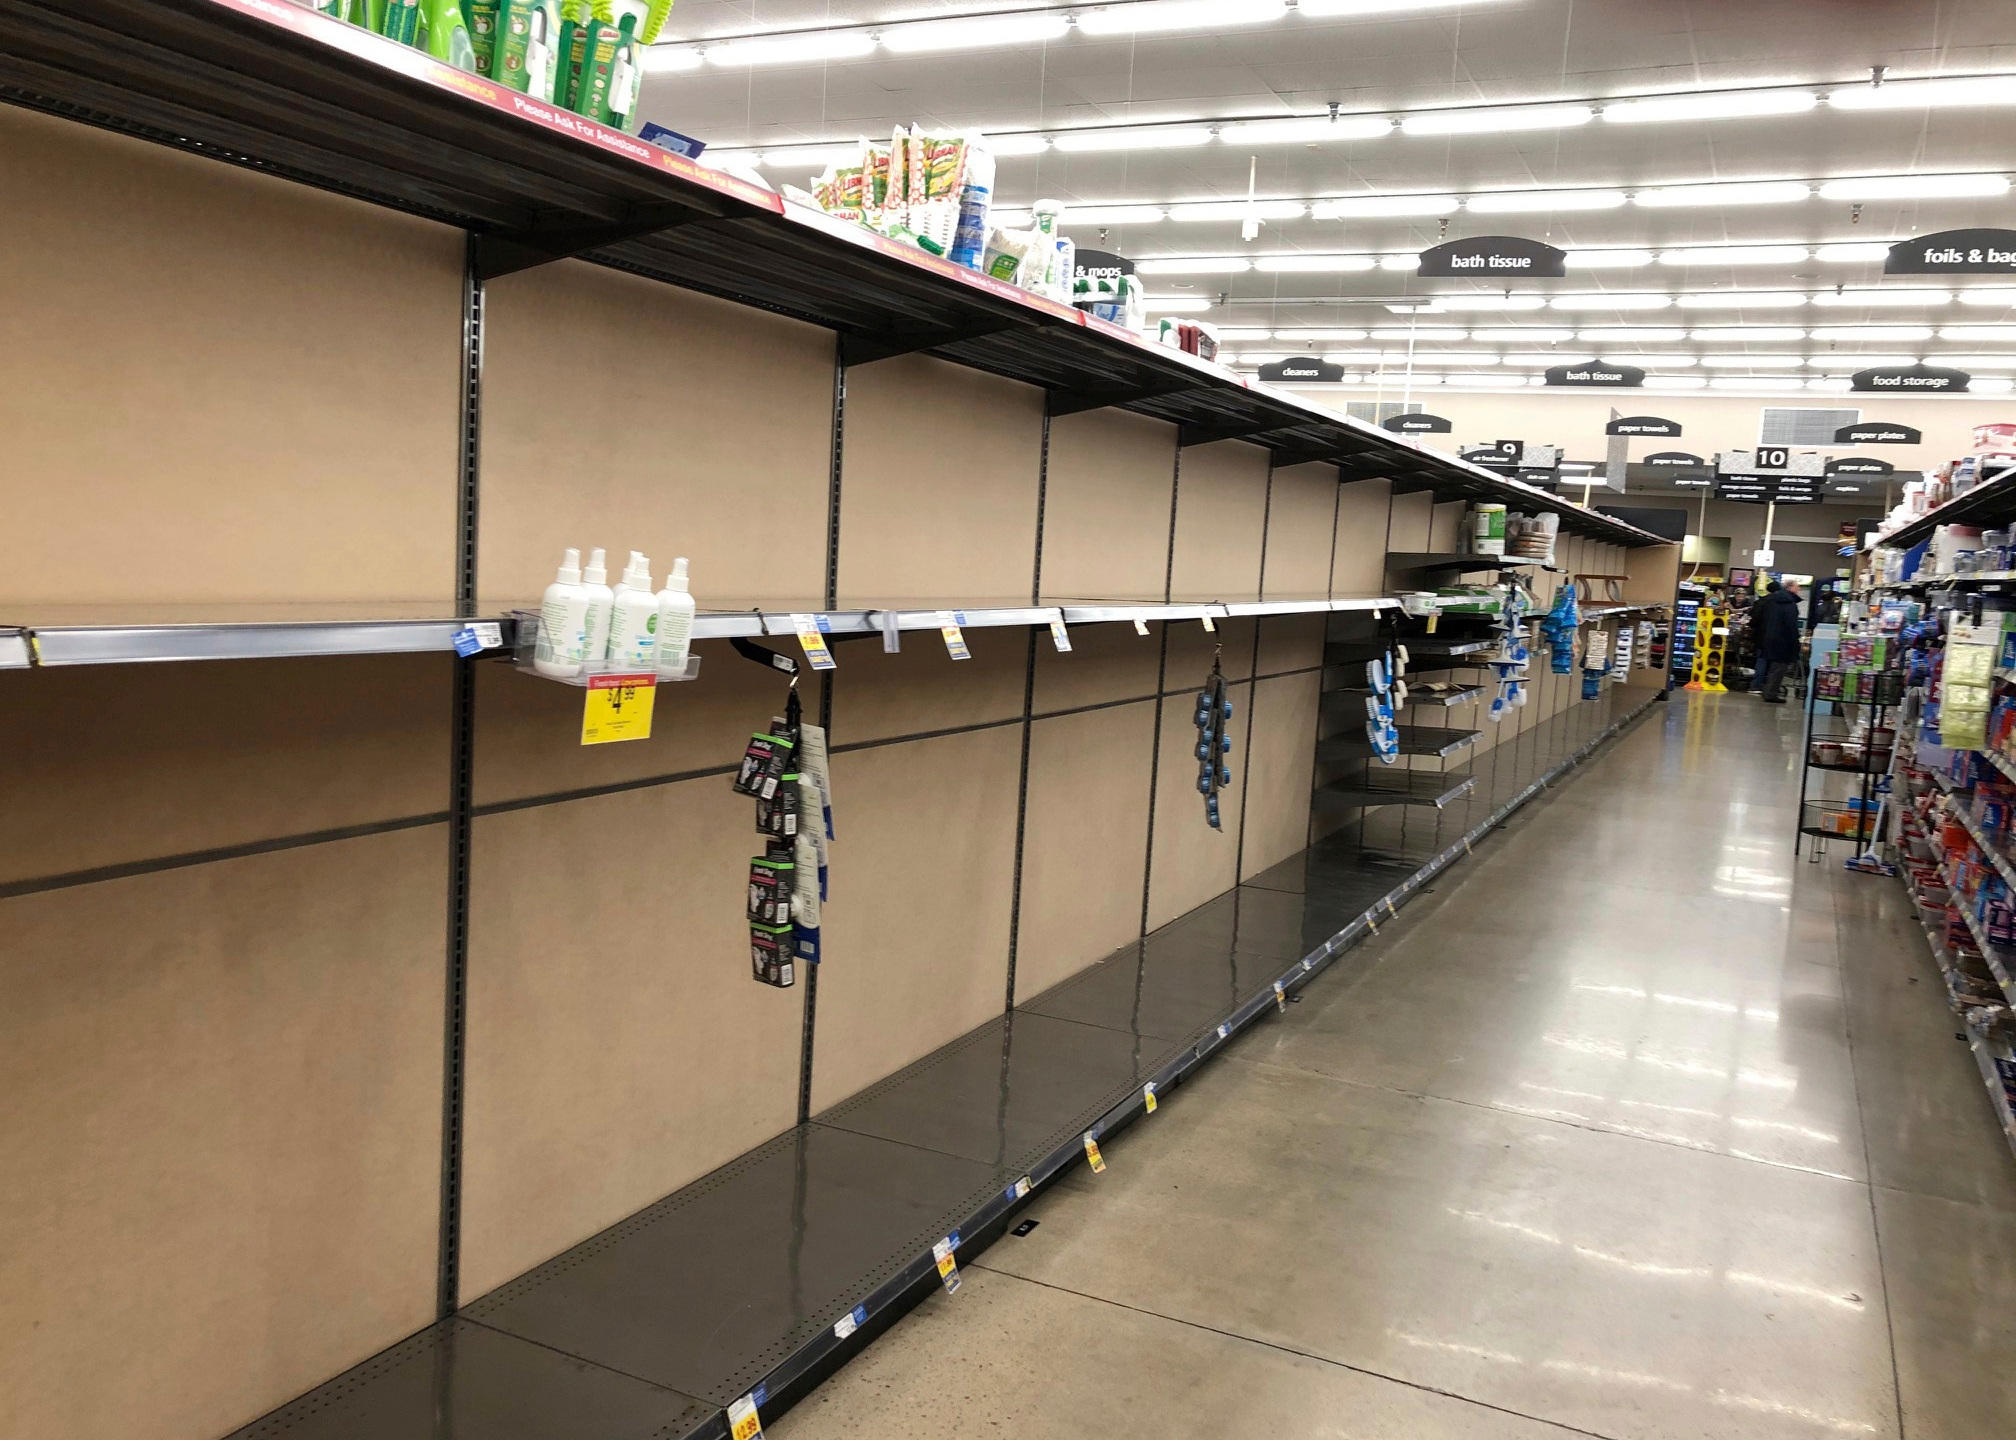 Is King Soopers Open On Christmas Day 2020 Colorado Springs King Soopers employee tests positive for